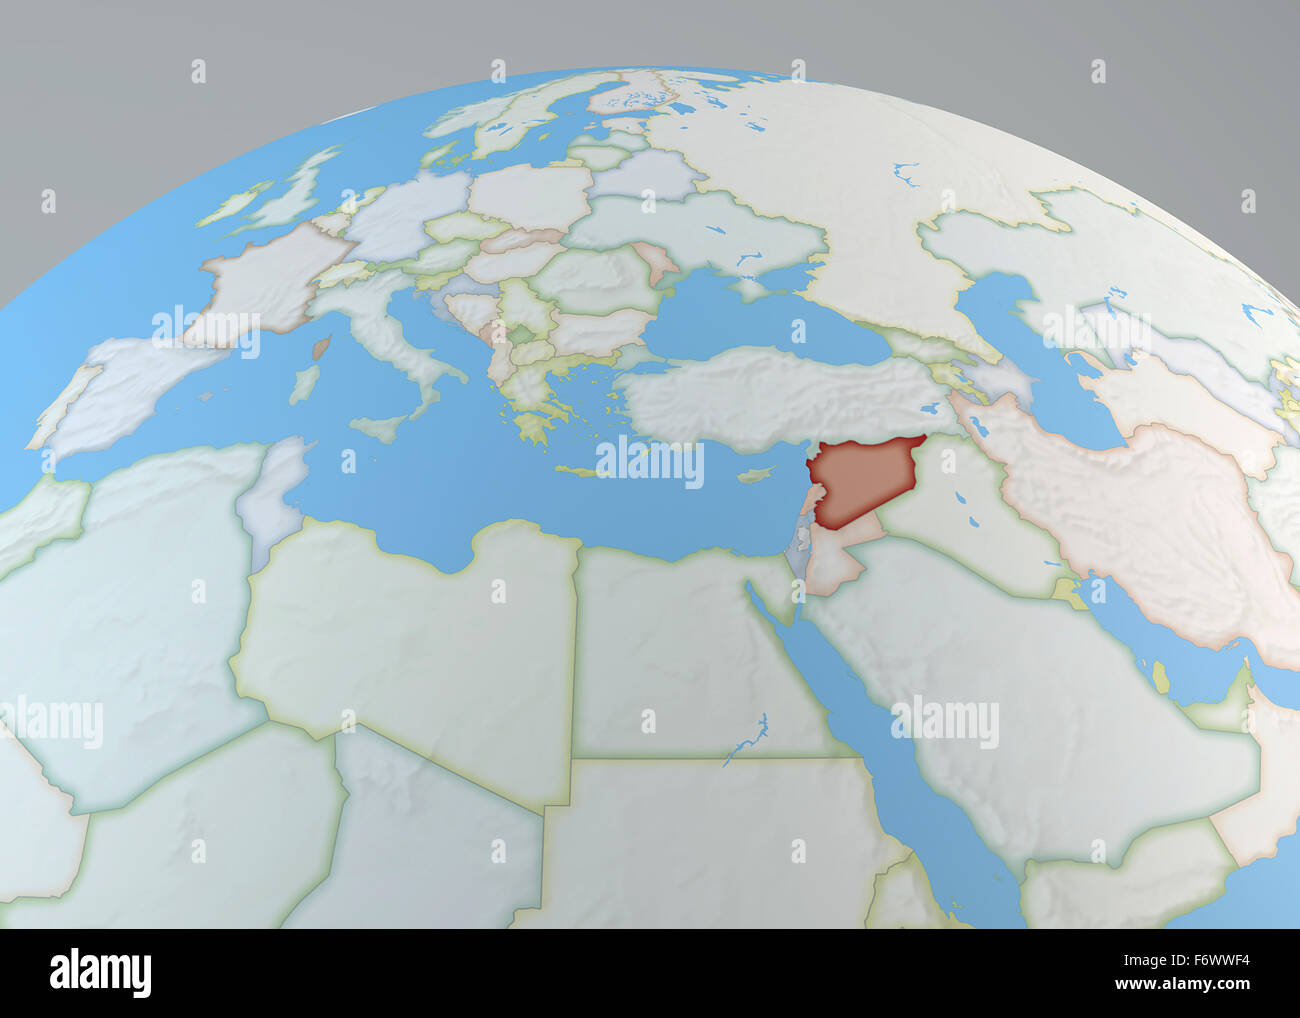 World Map Of Middle East With Syria Highlighted North Africa And - Syria world map